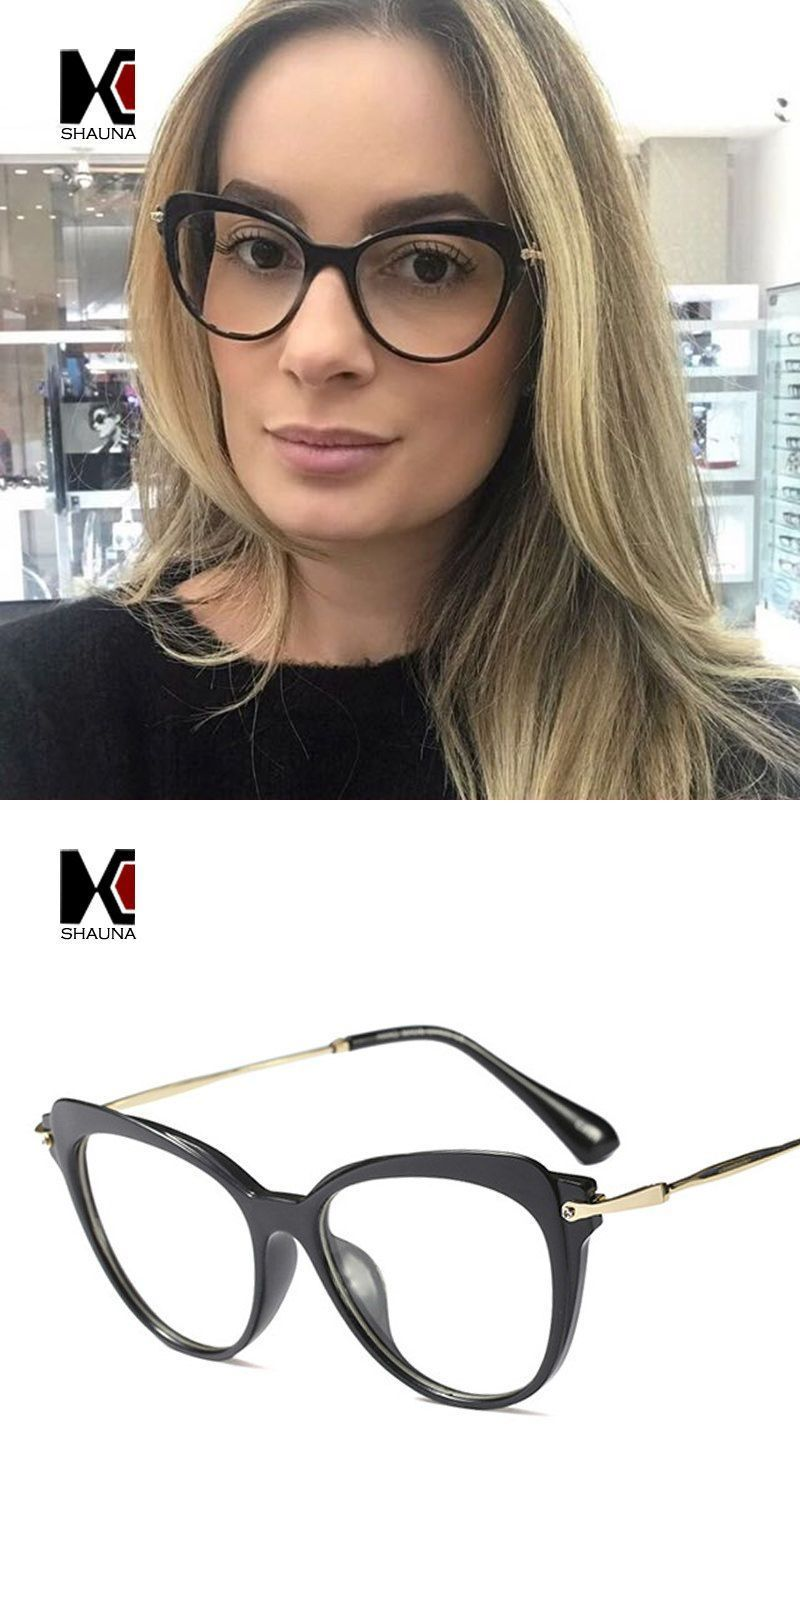 5bef67a7d170d Fashion women cat eye glasses frame anti-blue rays fashion ladies reading  eyeglasses uv400